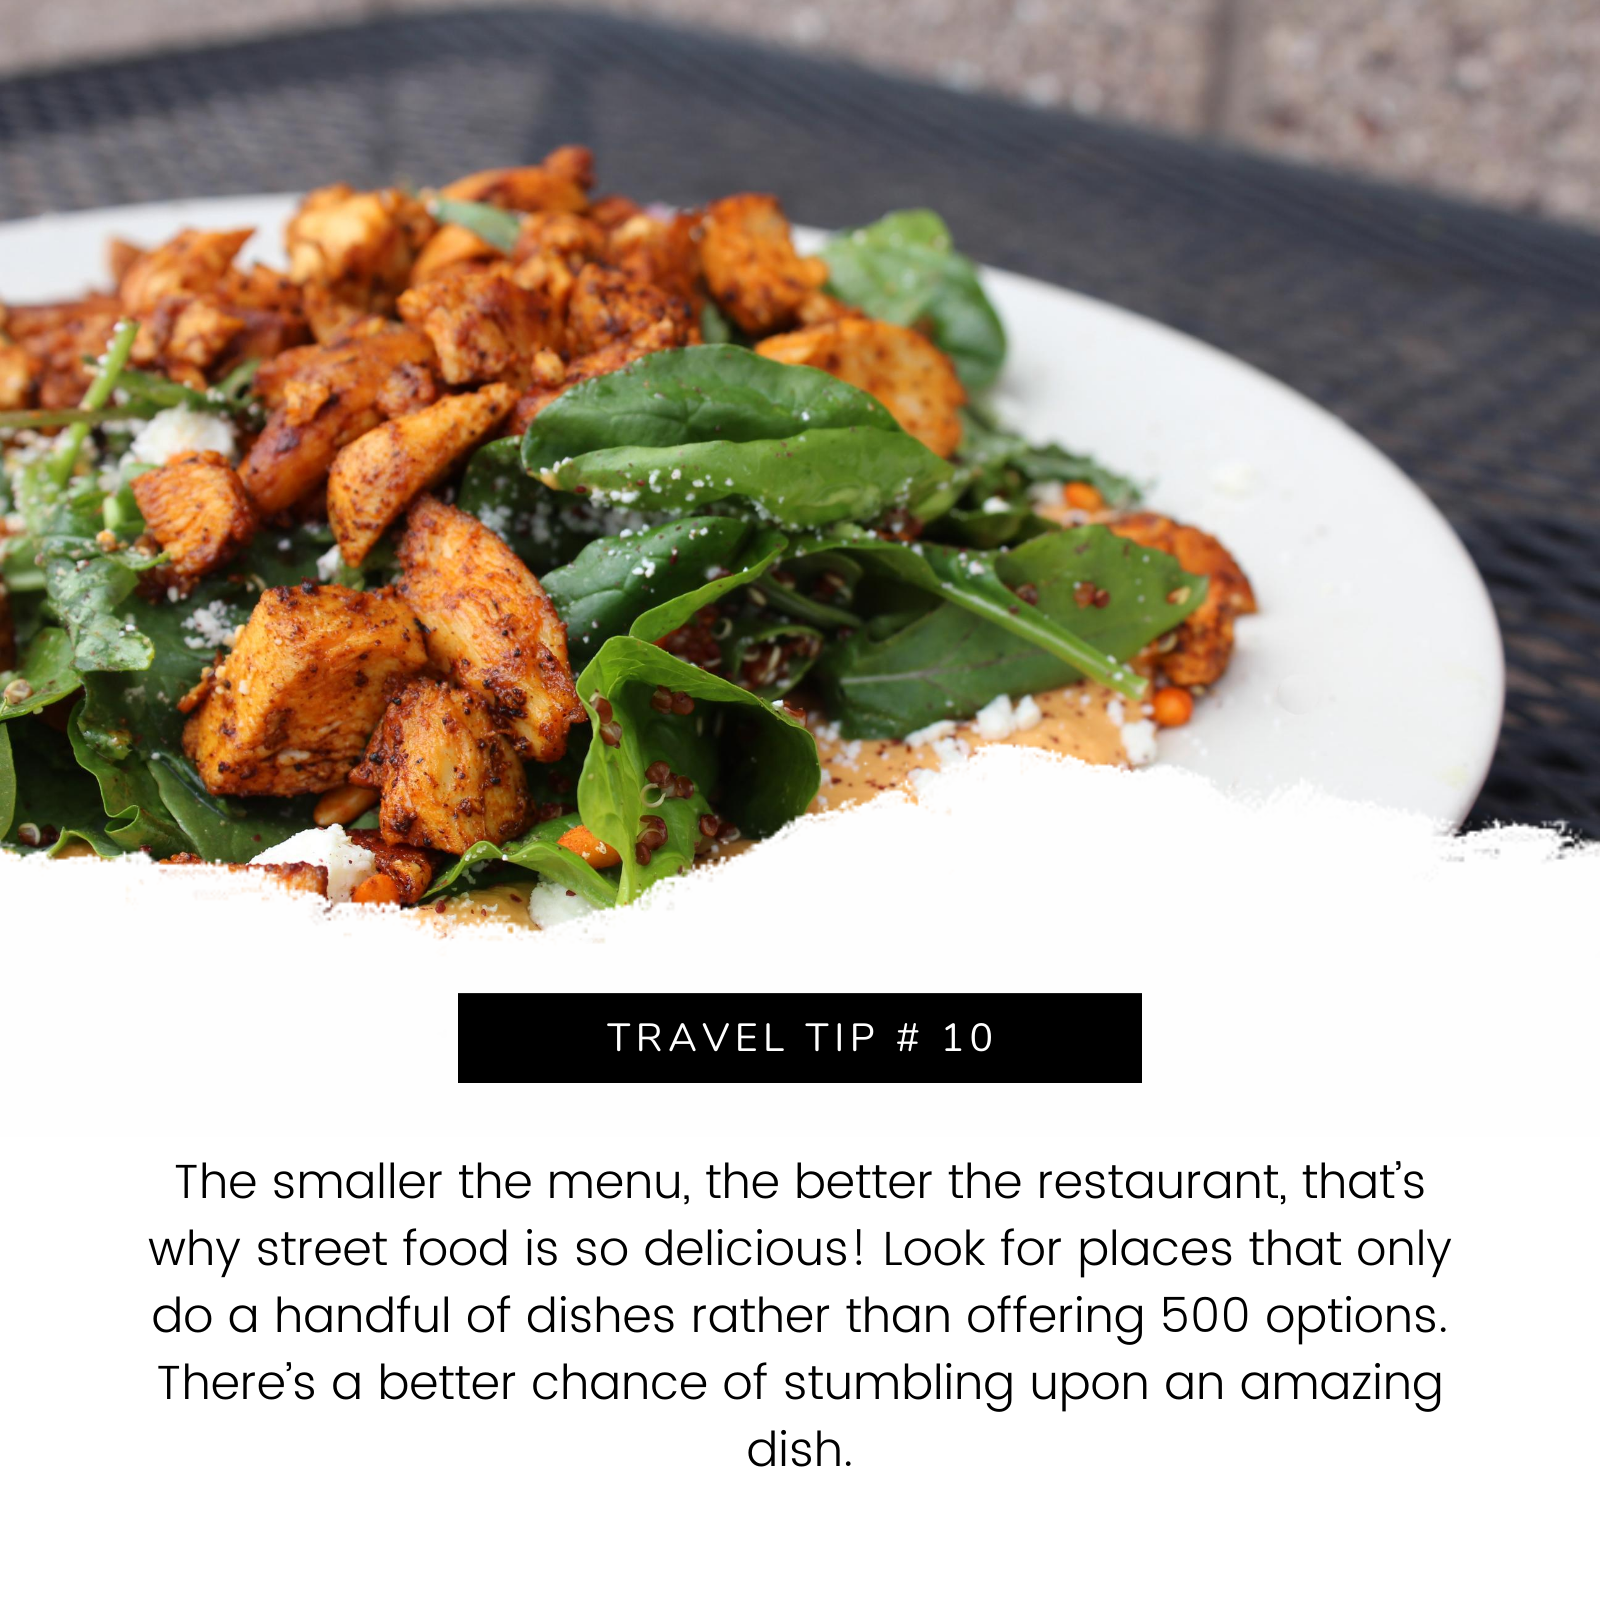 Travel Tip Tuesday! If you've never considered using a travel agent… well, consider it now. And more than consider it – try it out. Let us plan a trip for you and see how you feel about not having to deal with all the nitty-gritty bits. #traveltips #lunch #lunchideas #instafood #snacks #dinner #travelonabudget #budgettraveler #travelblogger #travelskills #ilovetravel #mybudgettravel #budgetlife #eurotrip#besttraveltips#dreamvacations#travelagent#traveladvisor#luxurytravel#advisor